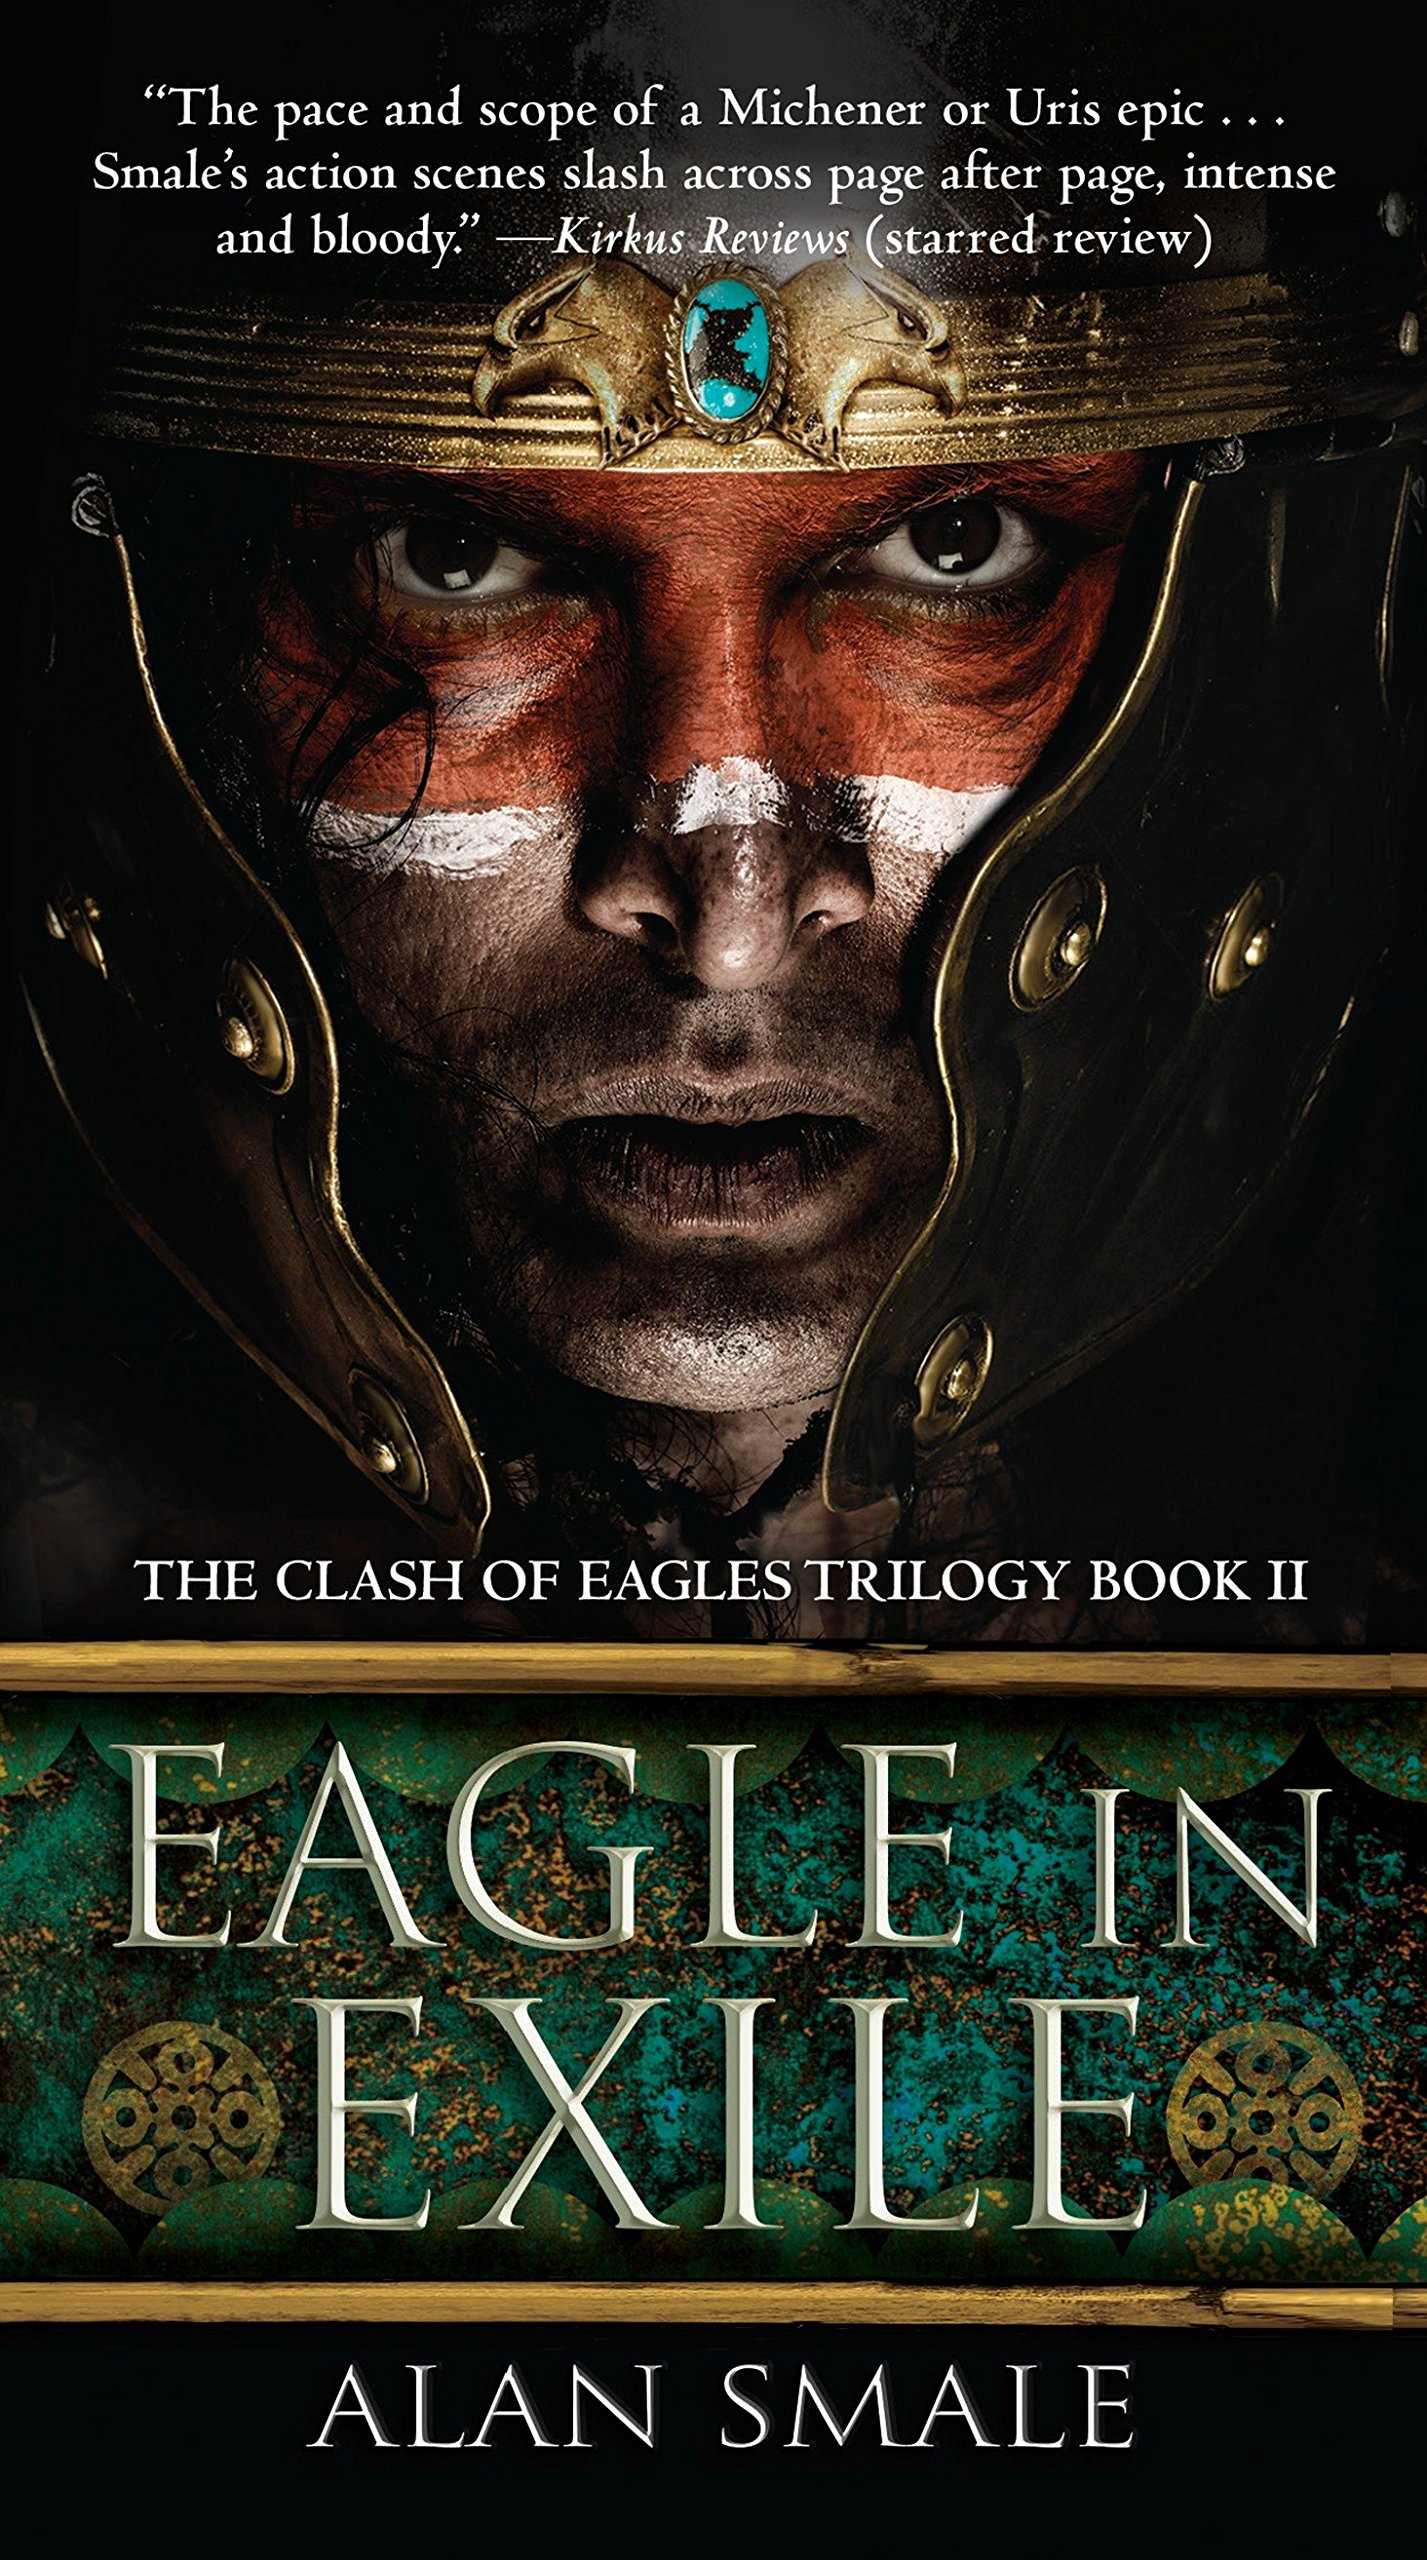 Download Eagle in Exile: The Clash of Eagles Trilogy Book II PDF